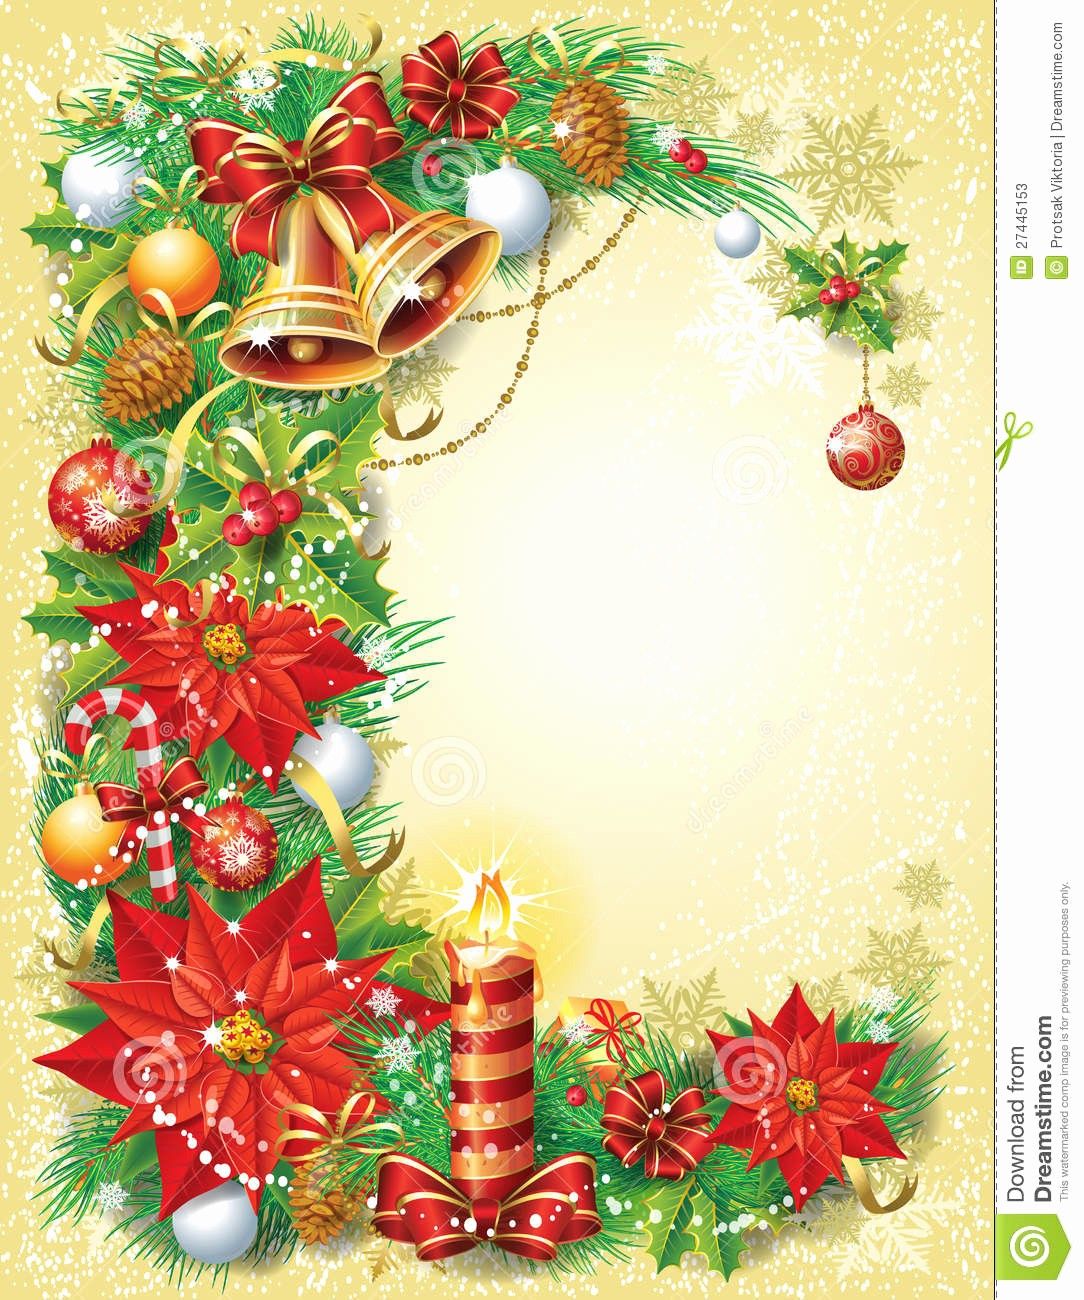 Christmas Certificate Template Free Download Beautiful 10 Christmas Templates Free Download Free